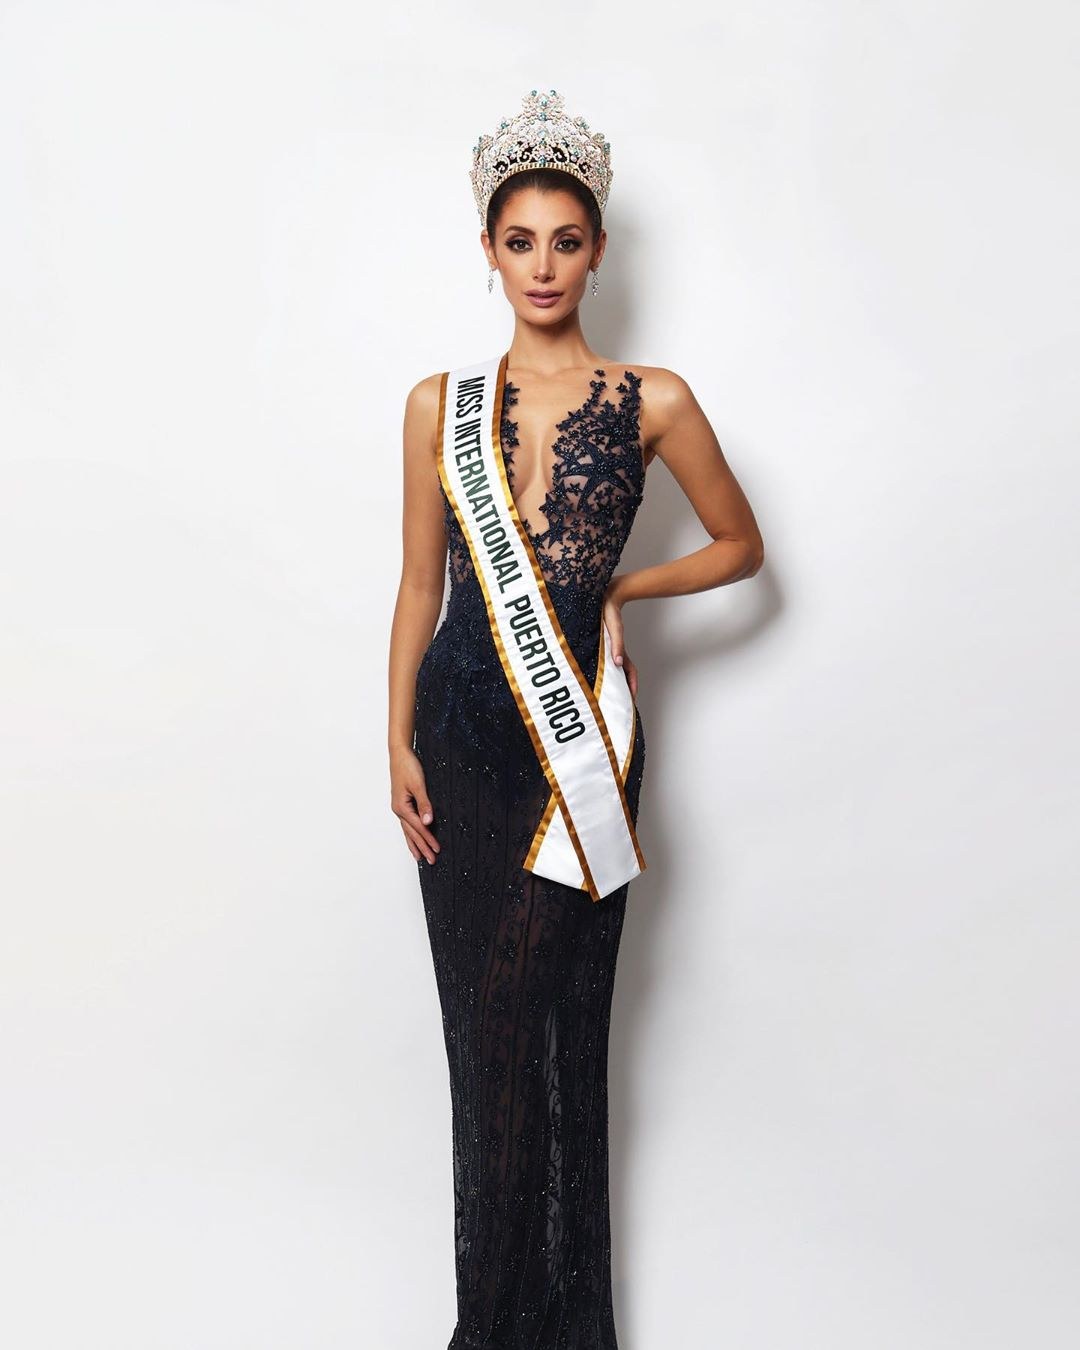 ivana carolina irizarry, miss international puerto rico 2019. 69737810